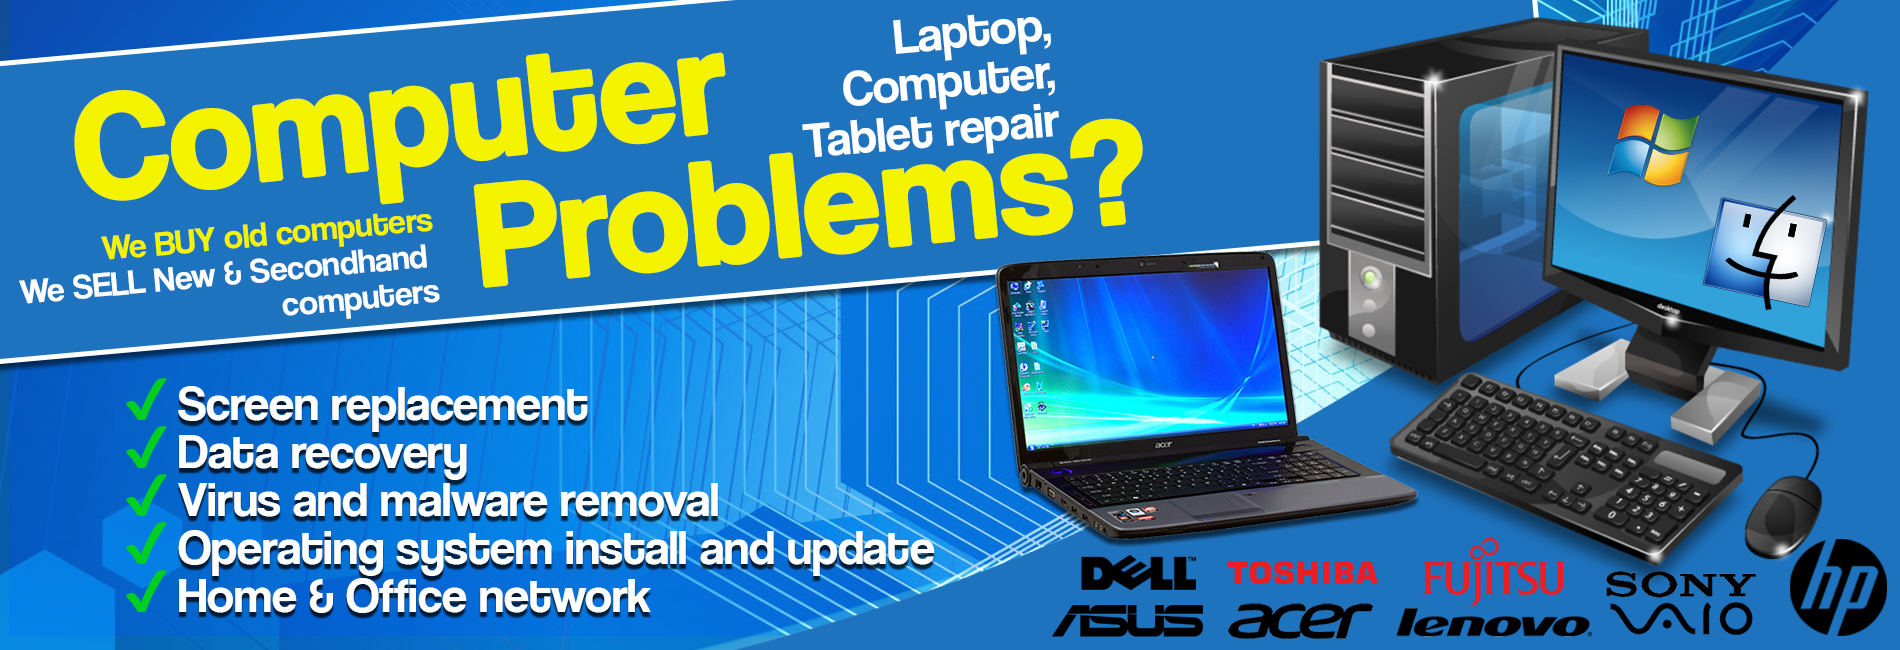 Laptop Repair Services in Udaipur | LENOVO, DELL, HP Service